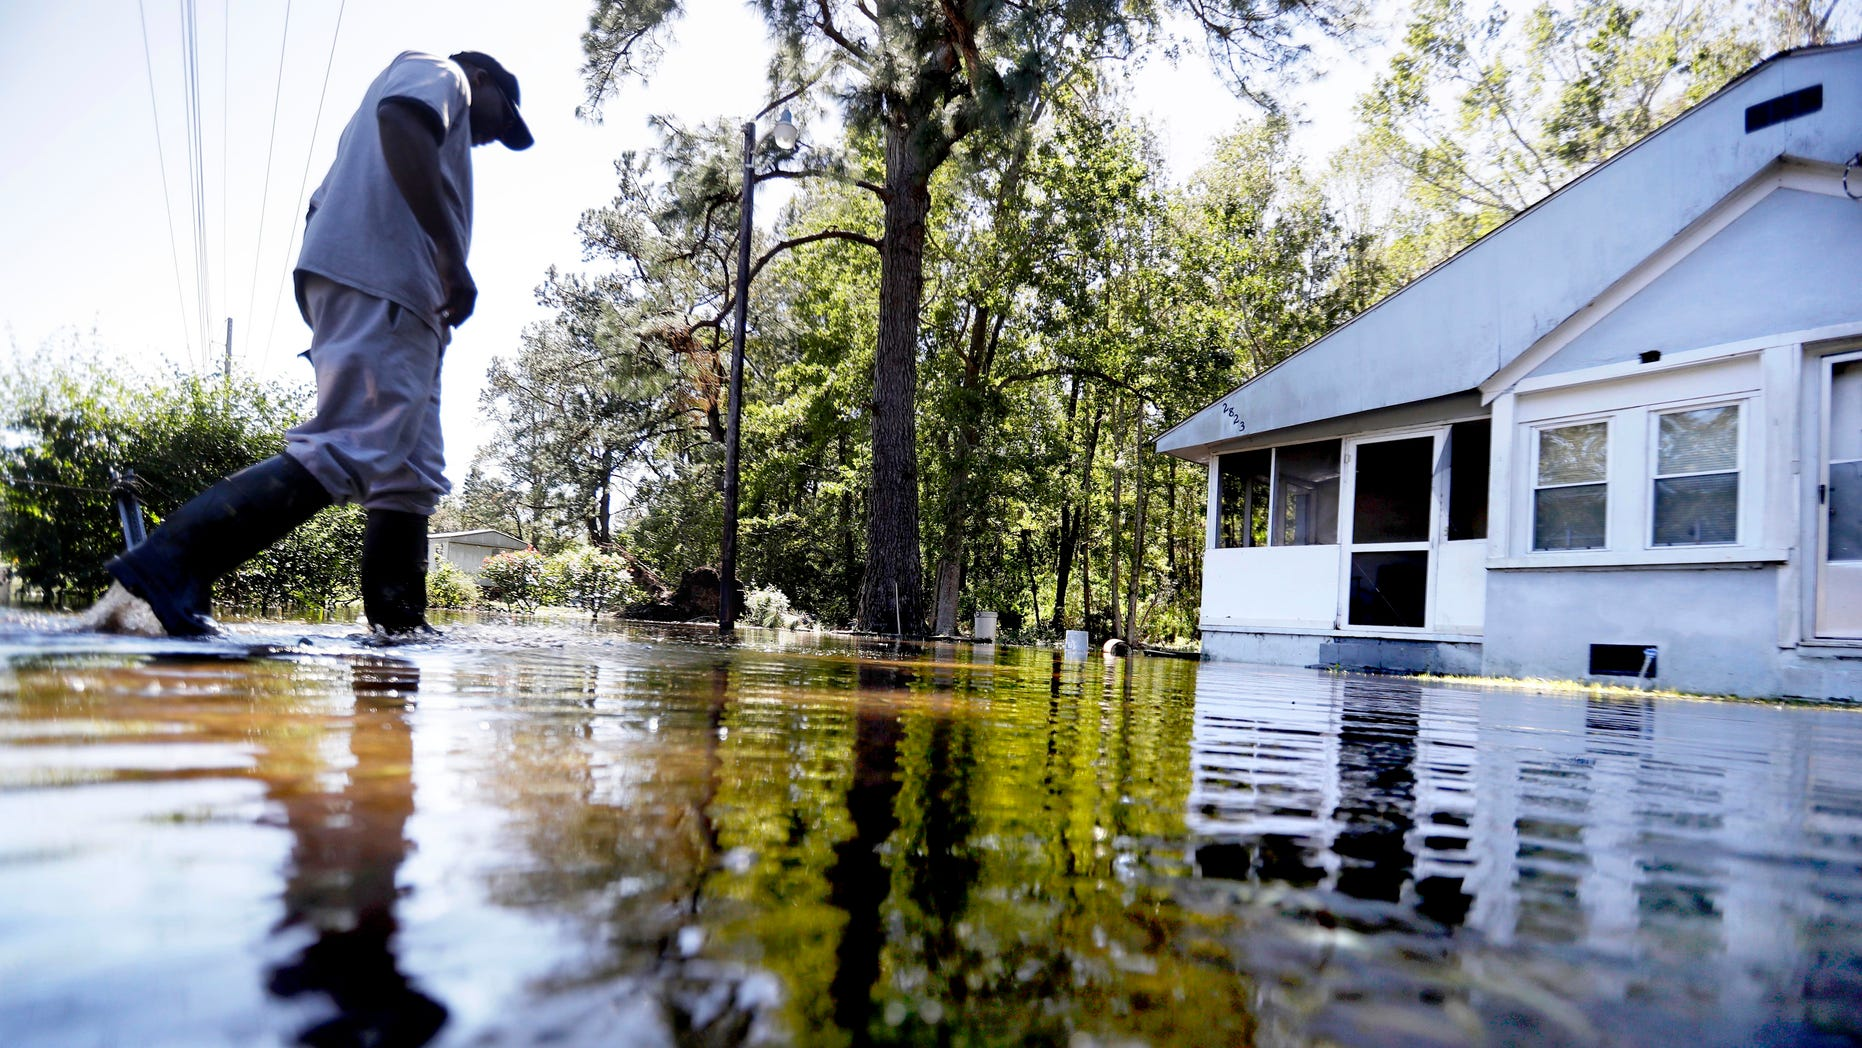 CORRECTS TO EDISTO ISLAND SOUTH CAROLINA, NOT GEORGIA - Kyle Simmons wades through water to check on the home of his grandmother following Hurricane Matthew in Edisto Island, S.C., Sunday, Oct. 9, 2016. A deteriorating Matthew was stripped of hurricane status Sunday morning and began making its slow exit to the sea. (AP Photo/David Goldman)